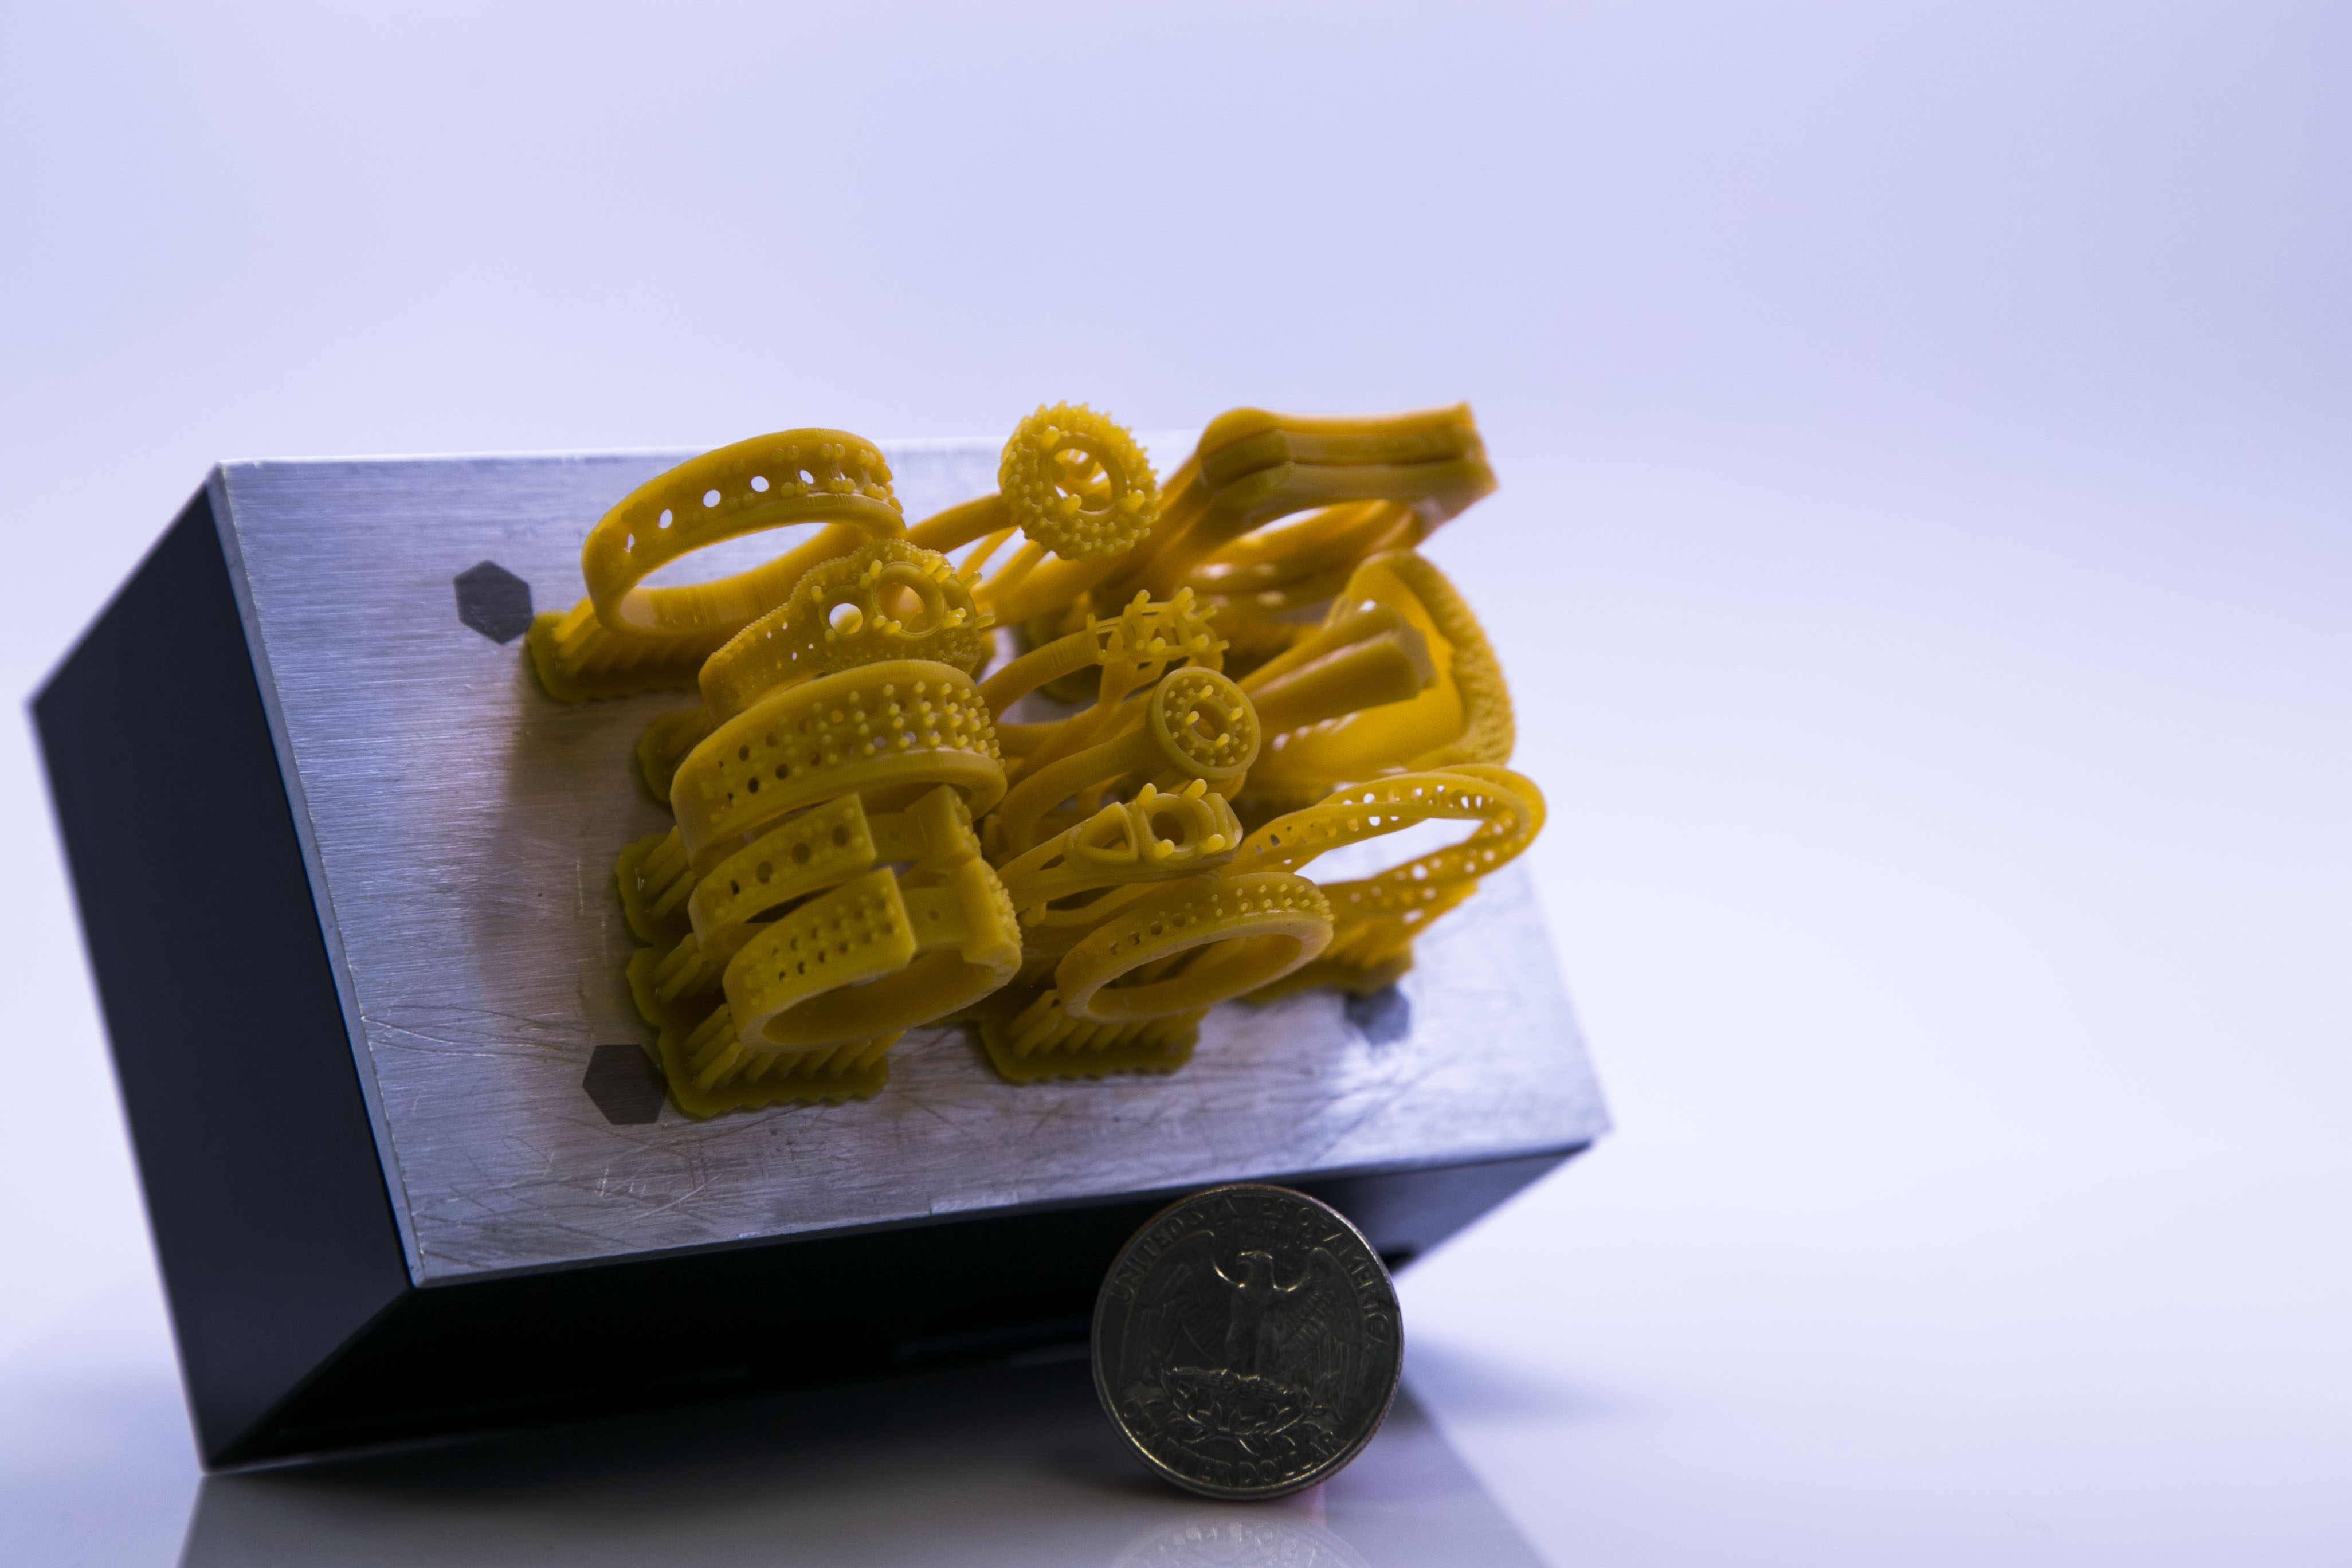 3D printed objects on the Pro's bed.